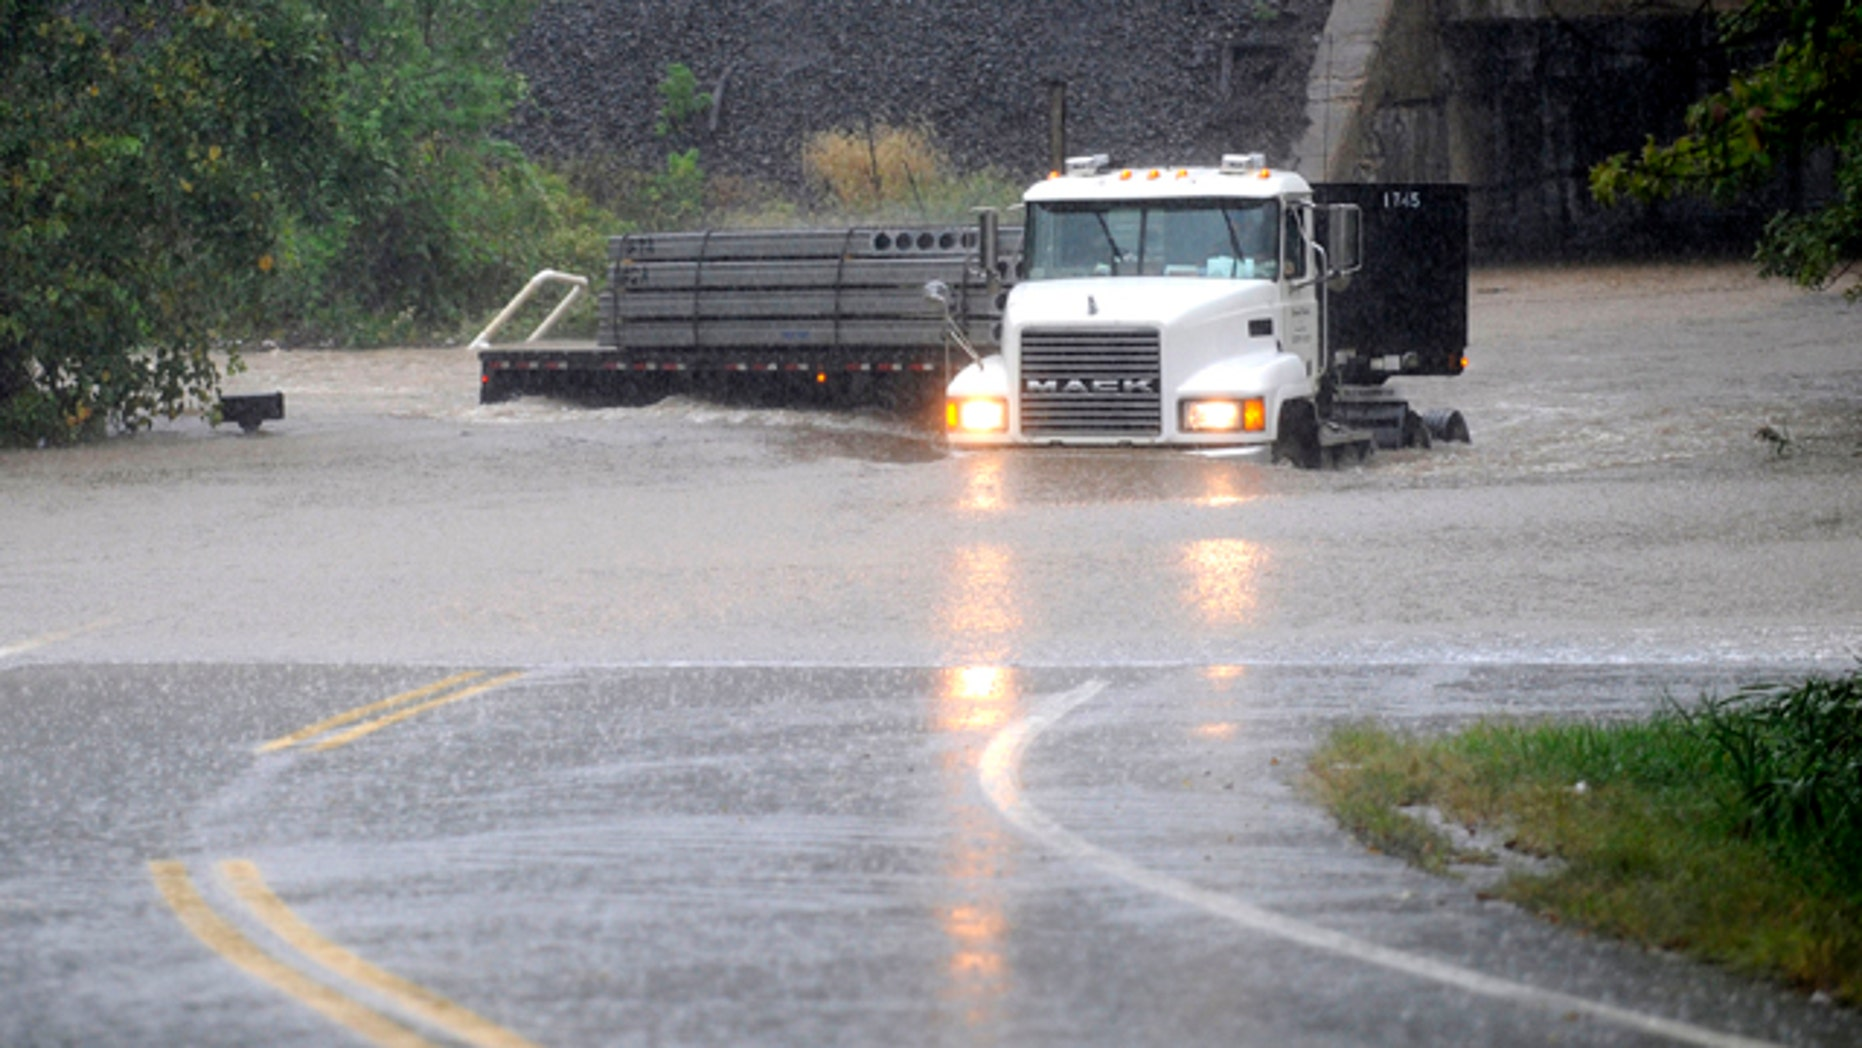 Sept. 30, 2010: A truck makes its way through a rising Stemmers Run on Golden Ring Road in east Baltimore County, Md. A massive rainstorm drenched the East Coast from the Carolinas to Maine, washing out commutes and wiping away months of dry weather.